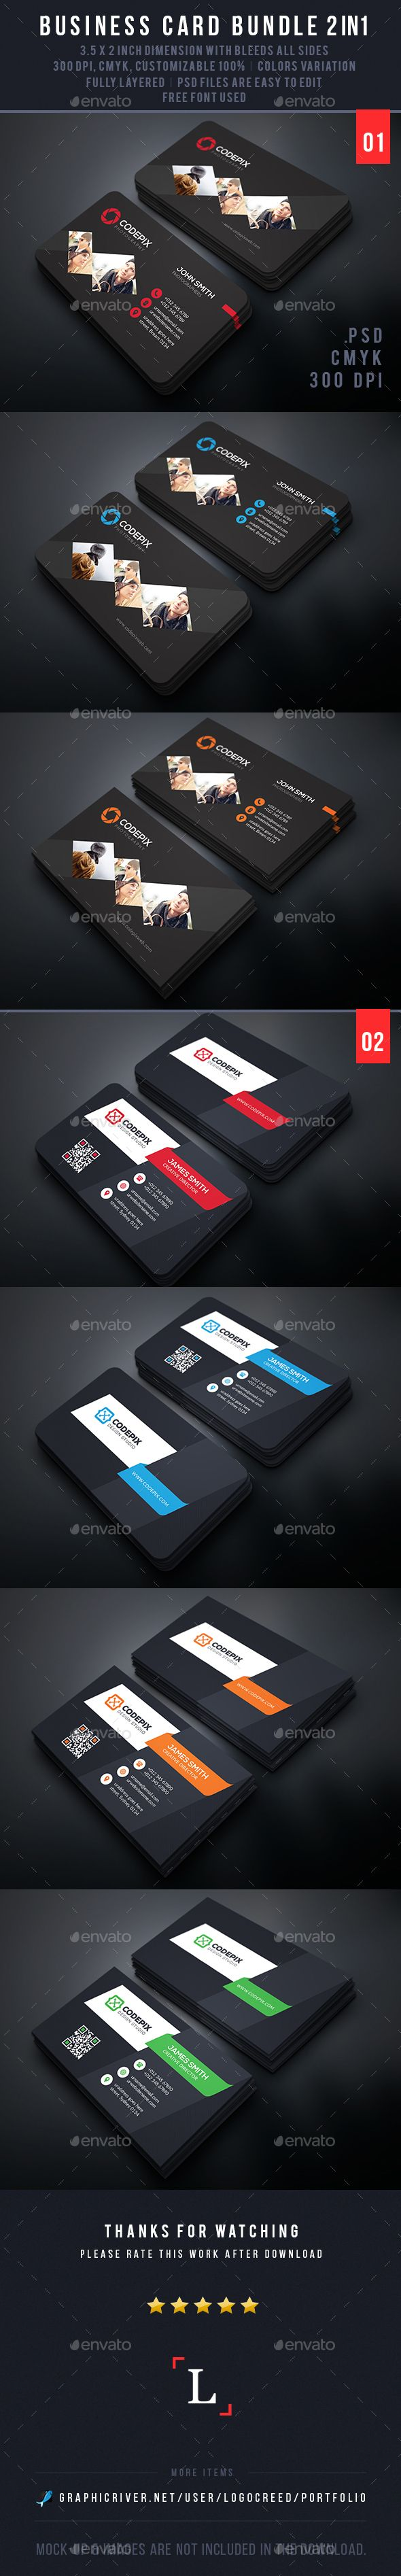 3023 best nice business cards on pinterest images on pinterest business cards bundle reheart Image collections